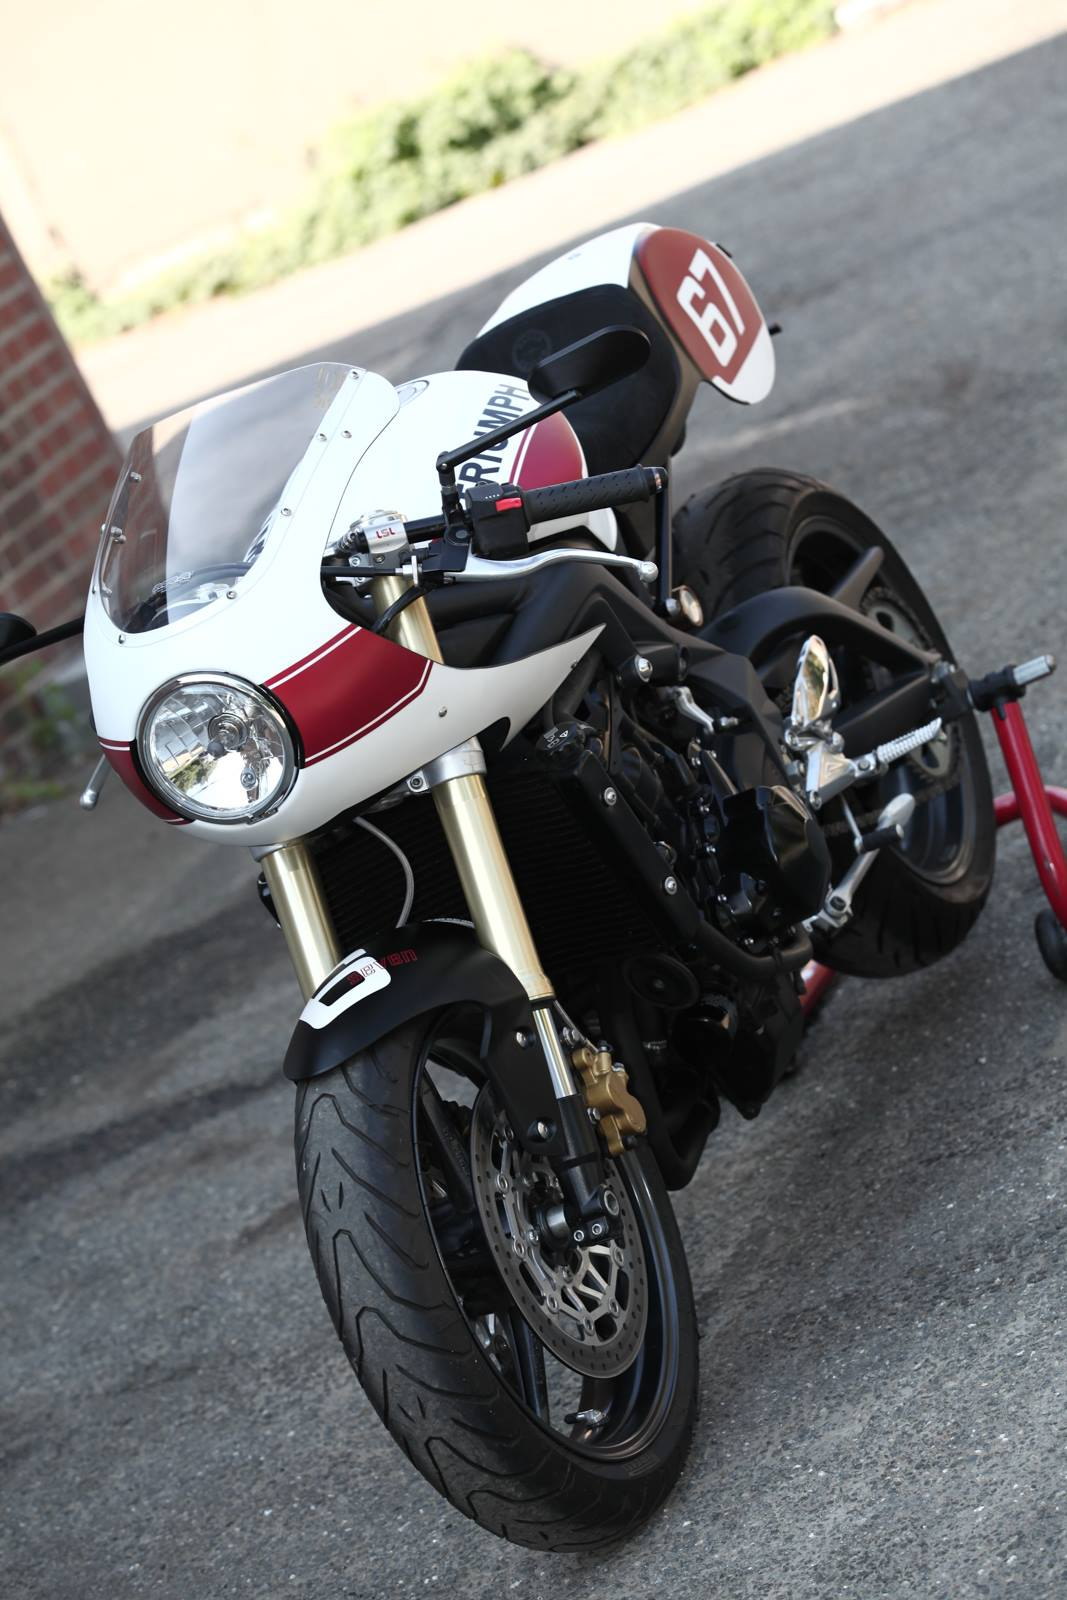 triumph street triple goes classic racer rocketgarage cafe racer magazine. Black Bedroom Furniture Sets. Home Design Ideas